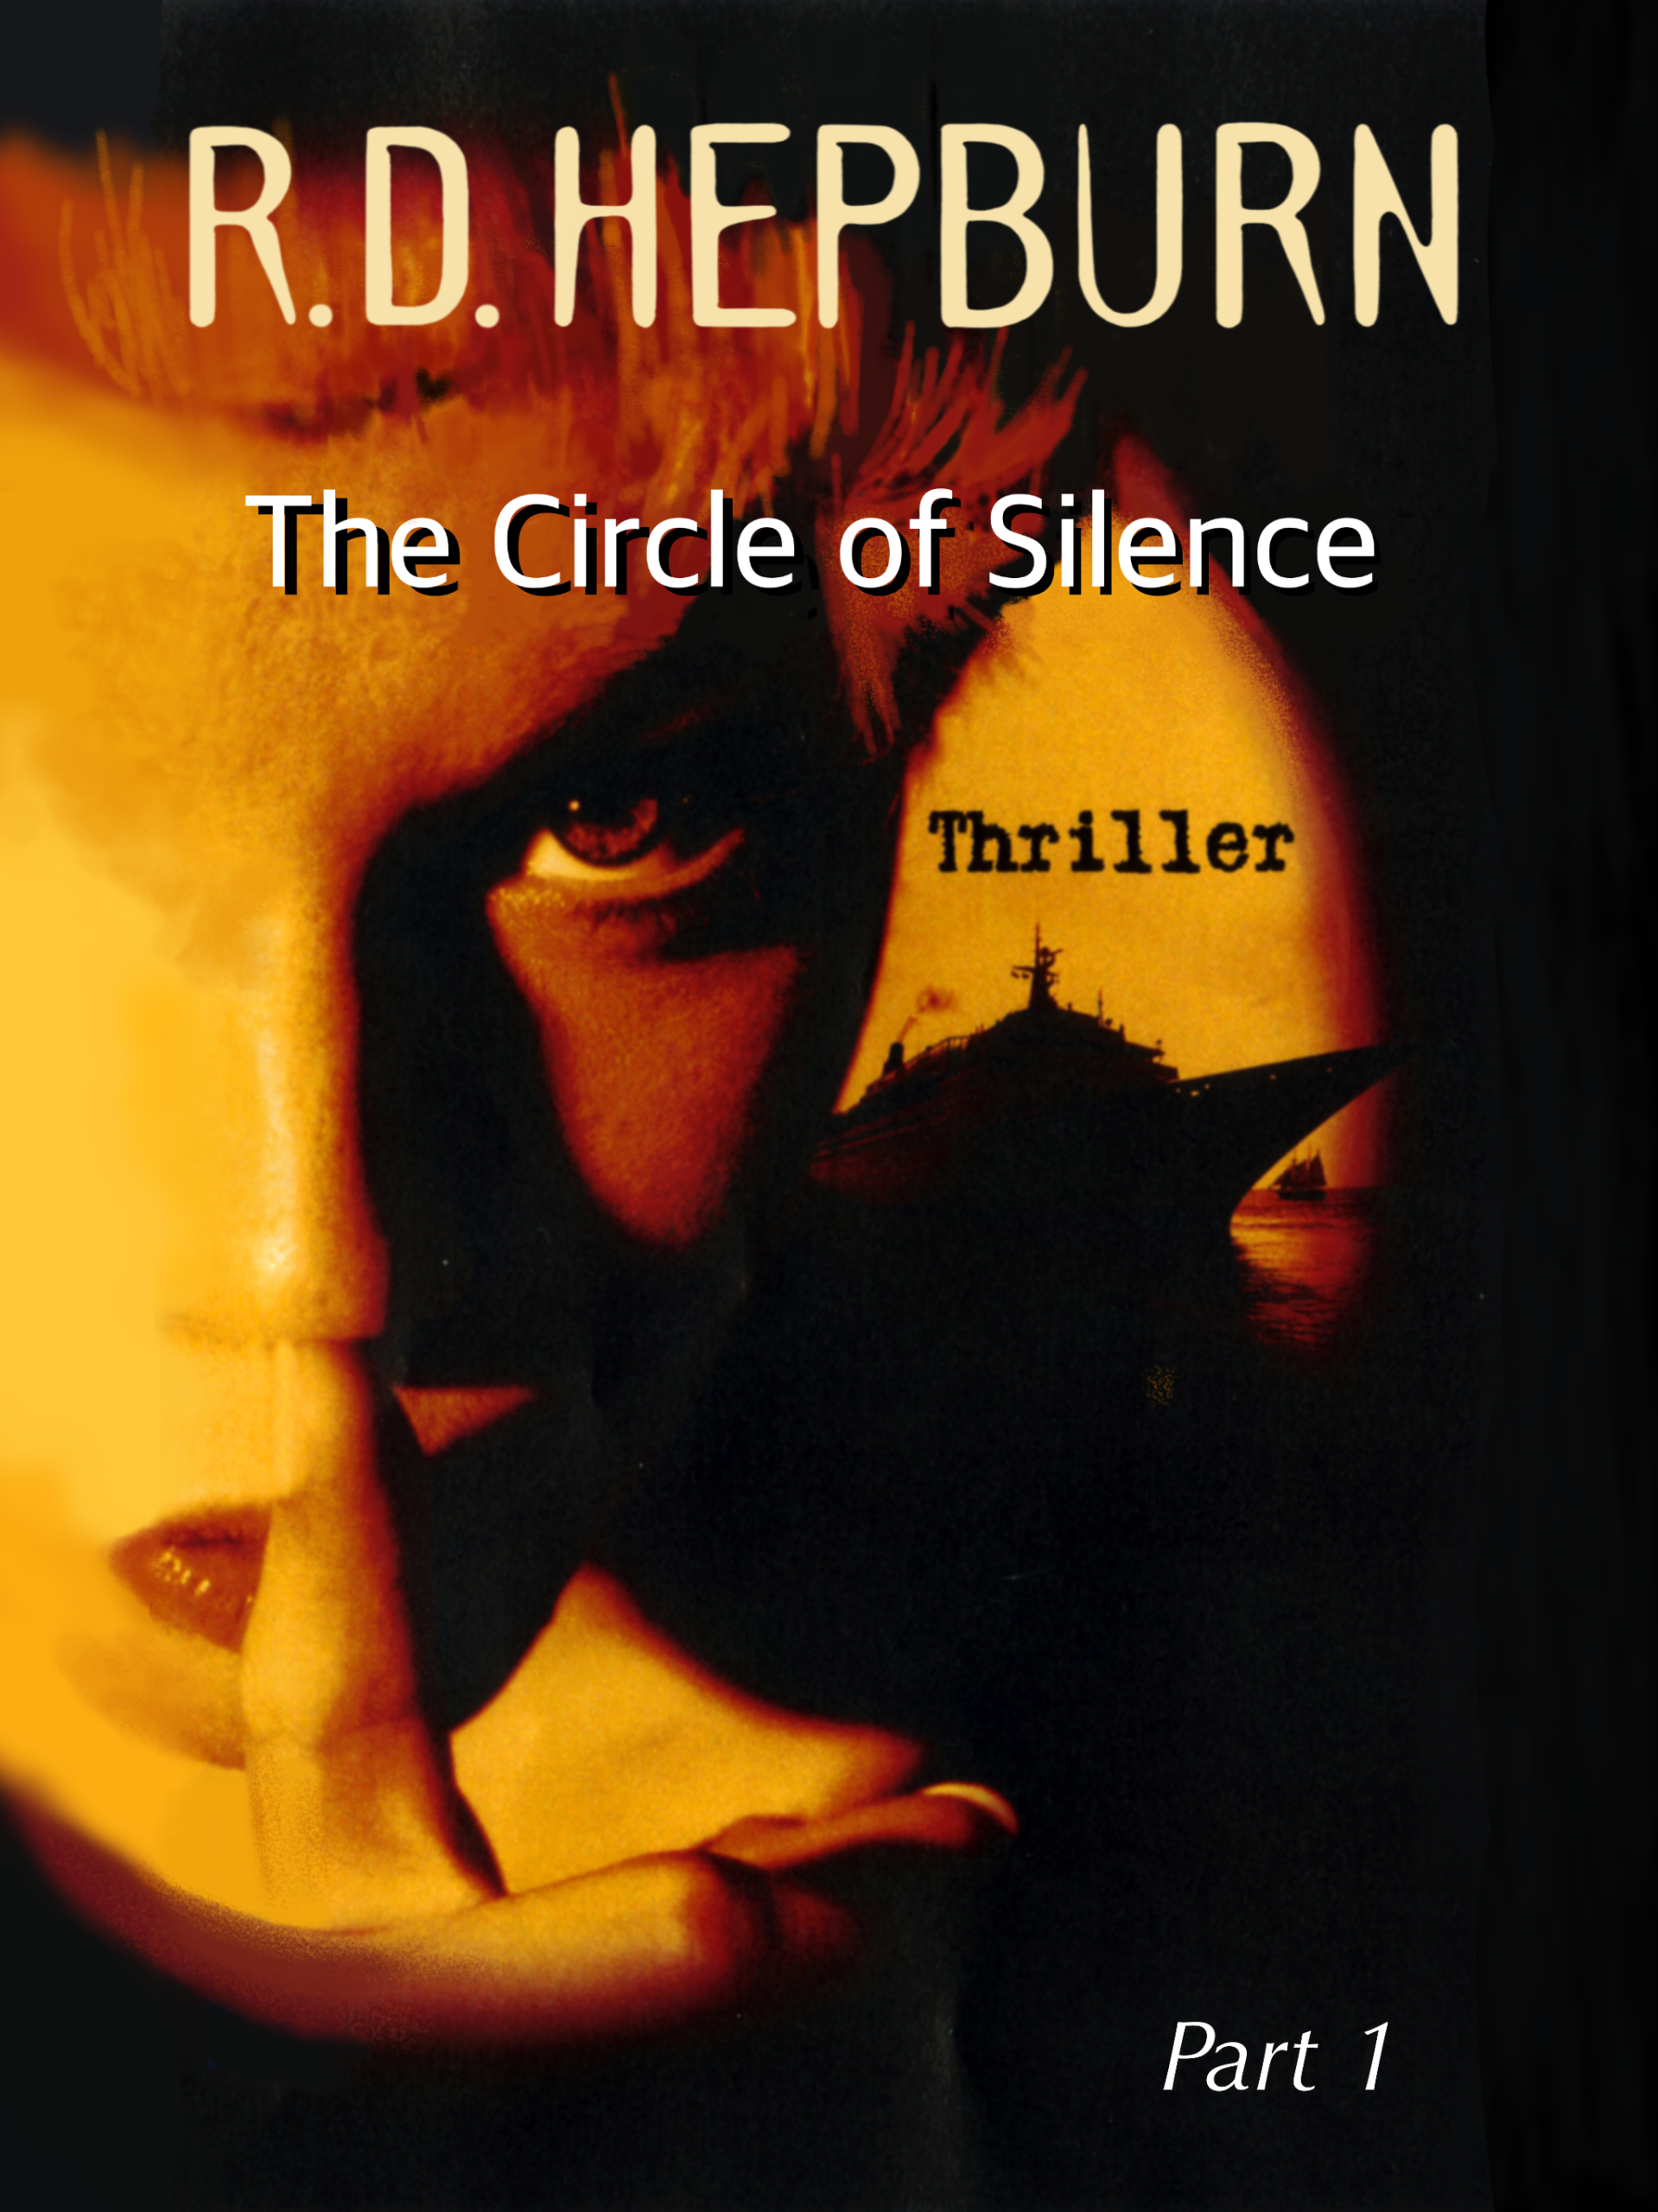 The Circle of Silence Part 1